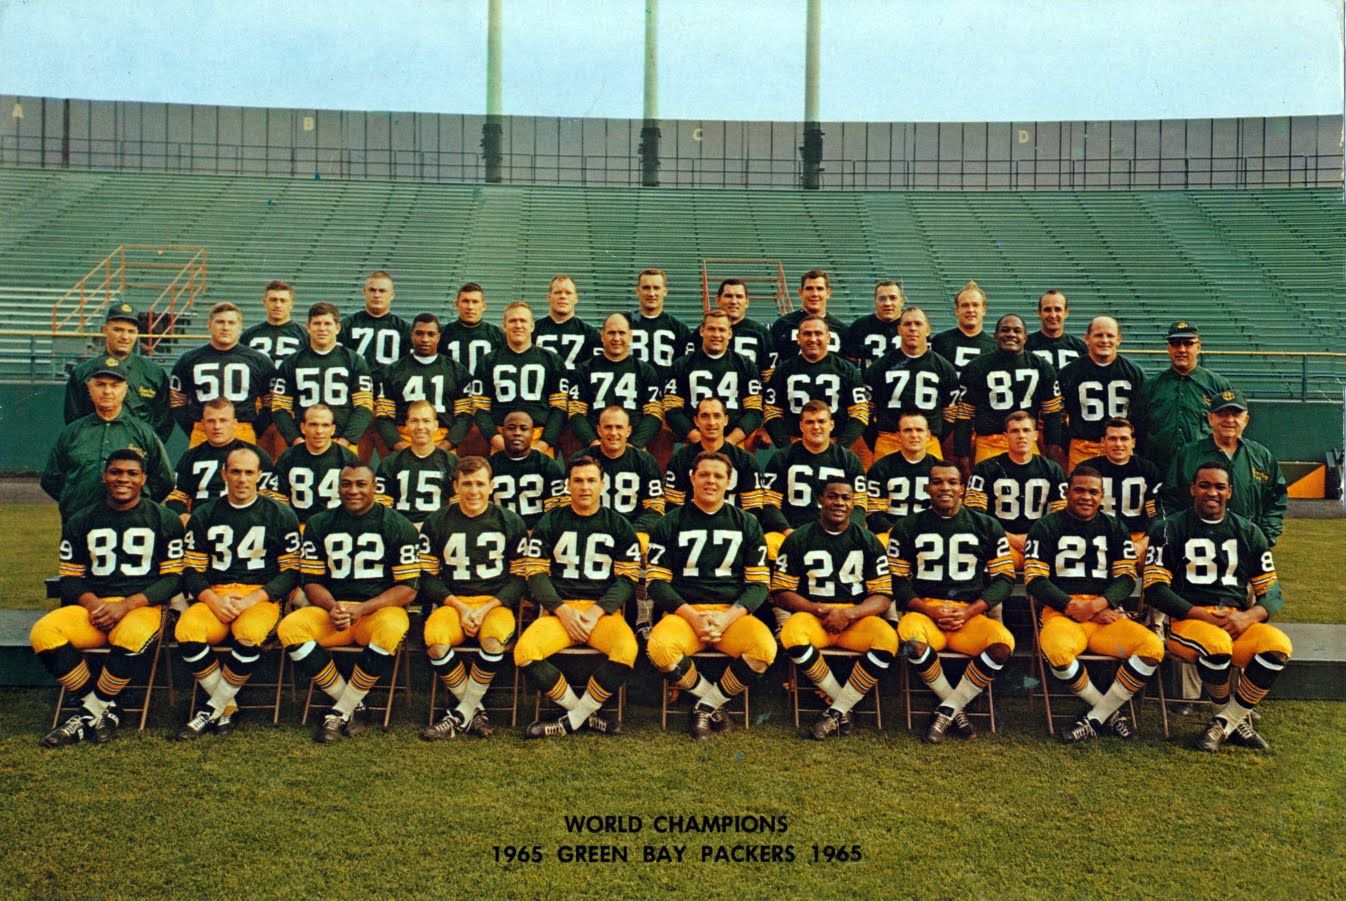 Packerville U S A Your 1965 Green Bay Packers Green Bay Packers Fans Green Bay Packers Green Bay Packers Vintage